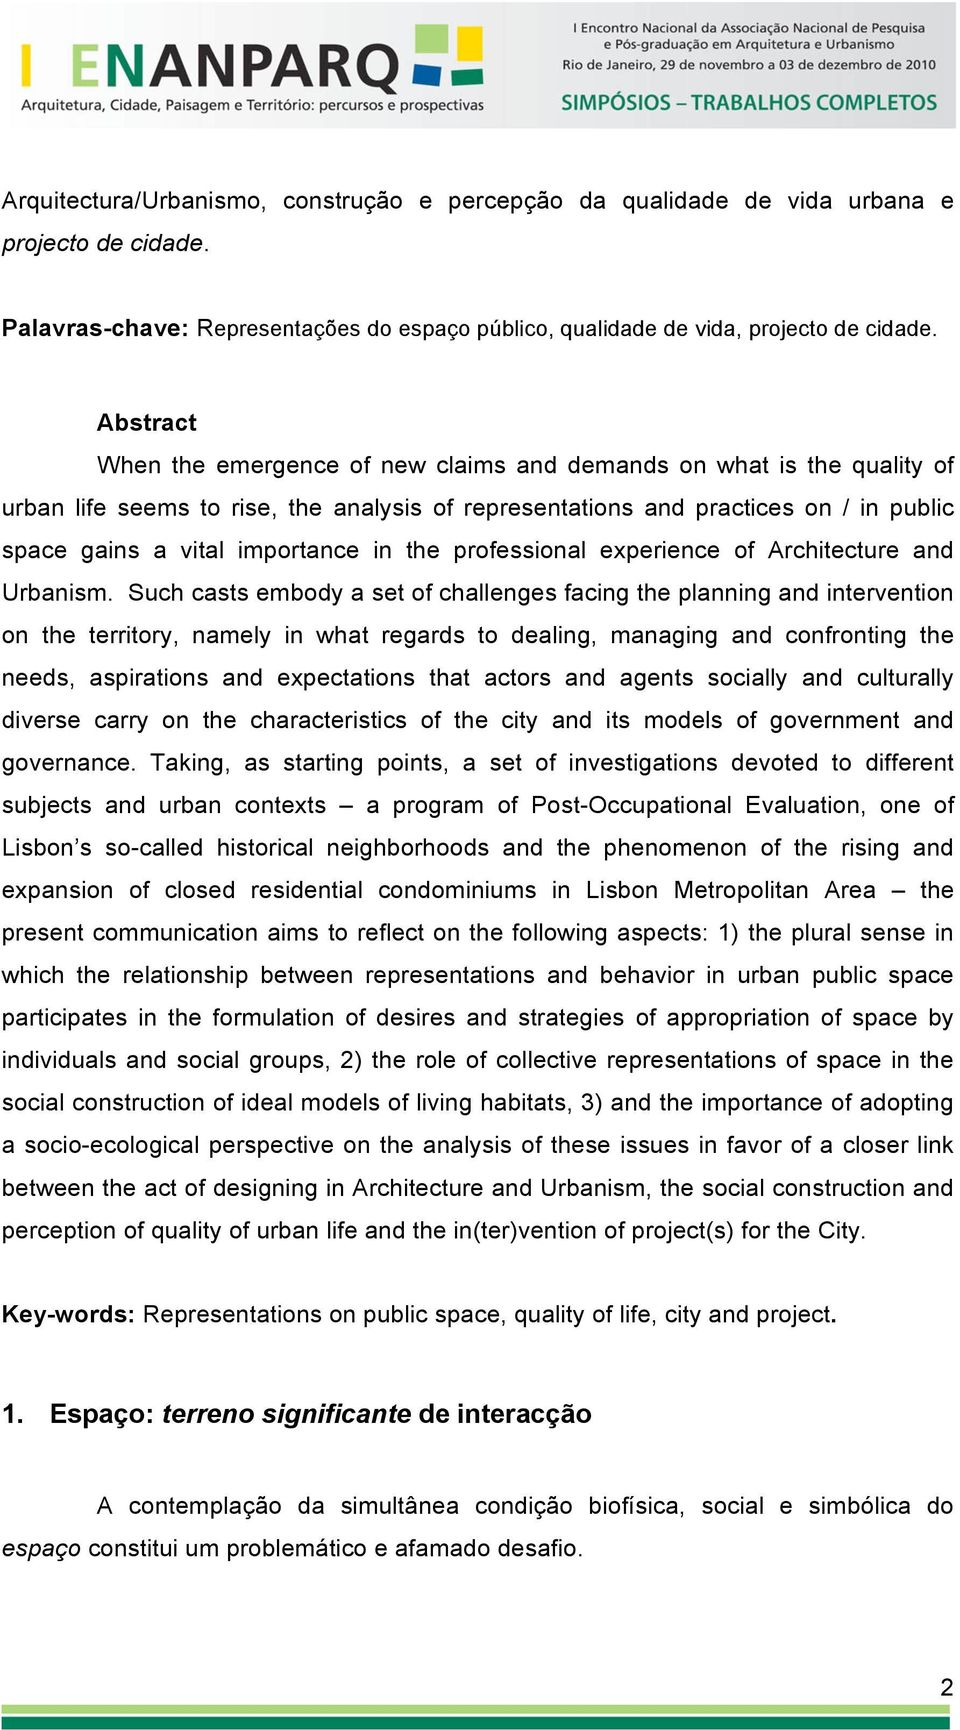 in the professional experience of Architecture and Urbanism.